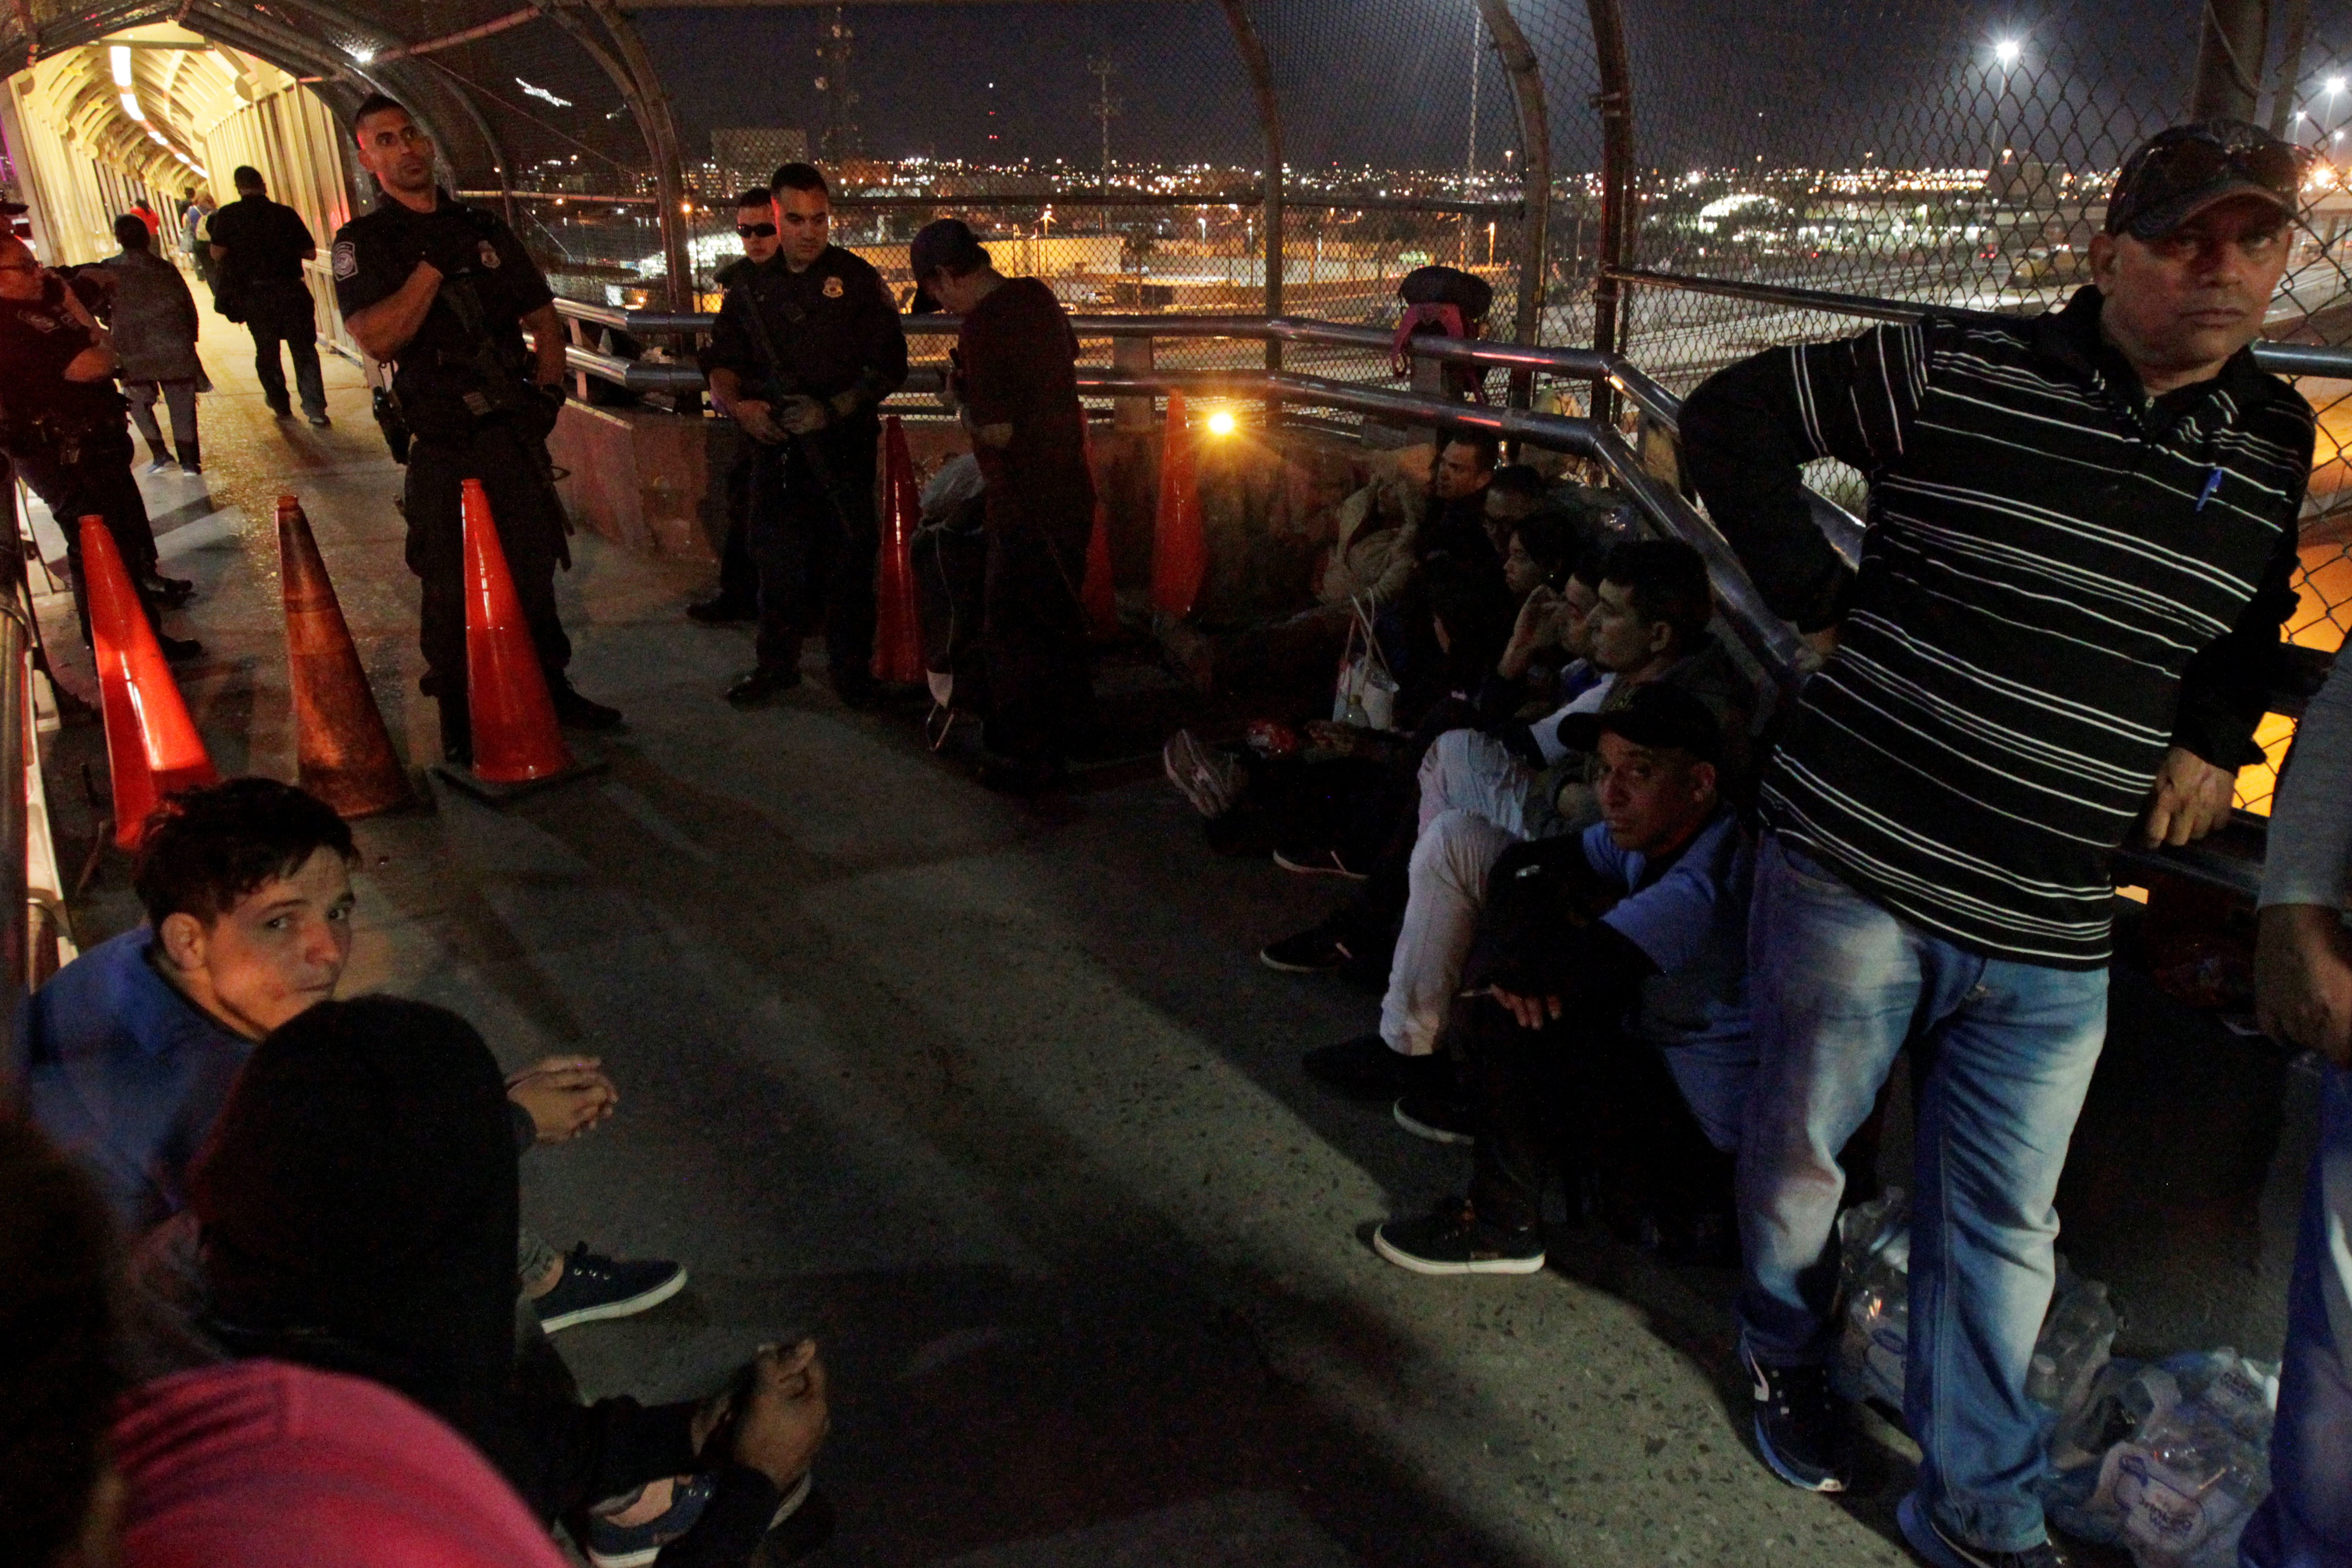 A group of Central Americans and Cubans hoping to apply for asylum wait at the border on an international bridge between Mexico and the U.S., in Ciudad Juarez, Mexico October 25, 2018. REUTERS/Jose Luis Gonzalez